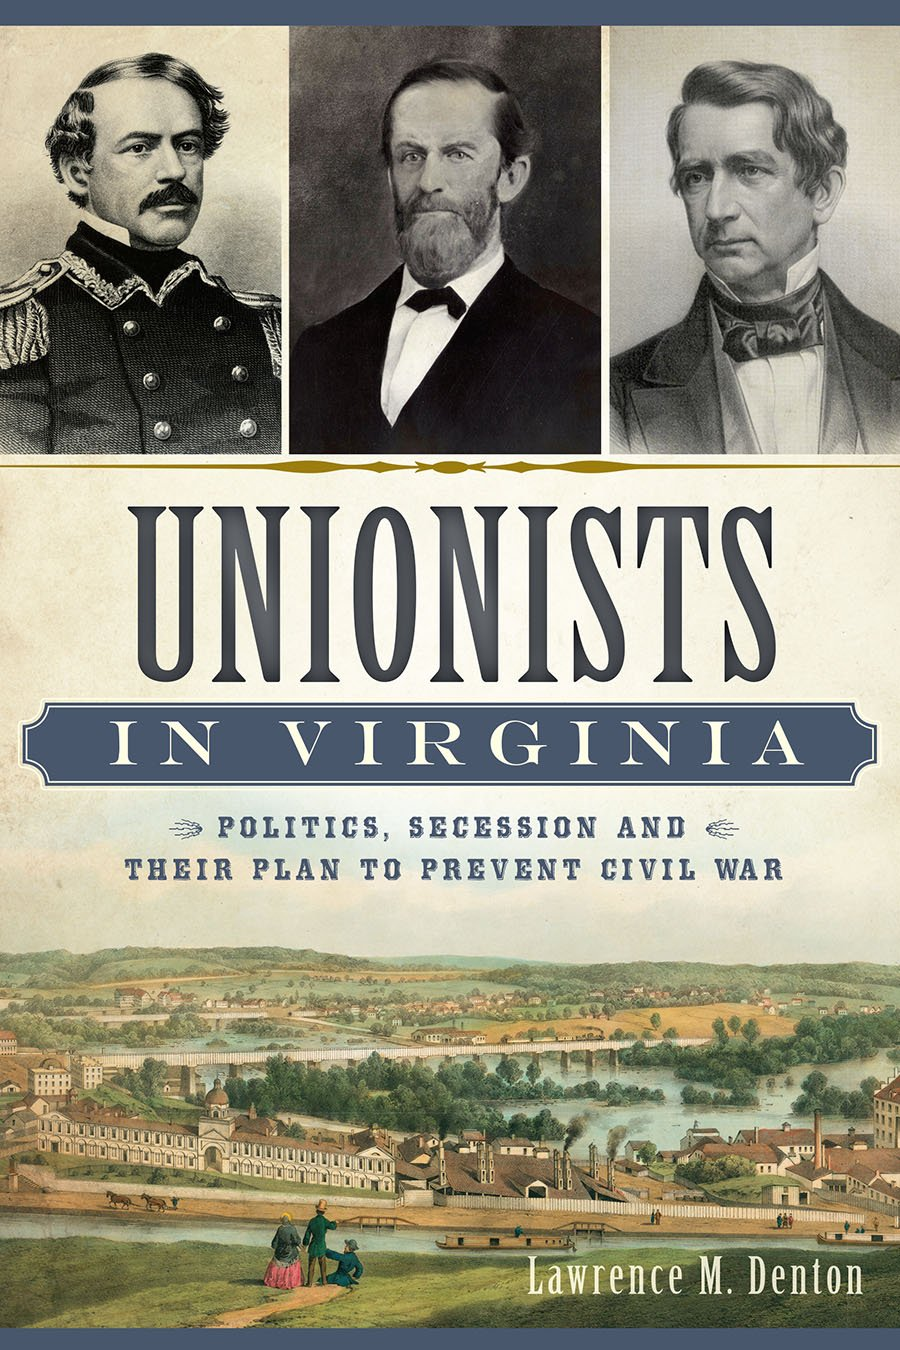 Unionists in Virginia: Politics, Secession and Their Plan to Prevent Civil War (Civil War Series) ebook